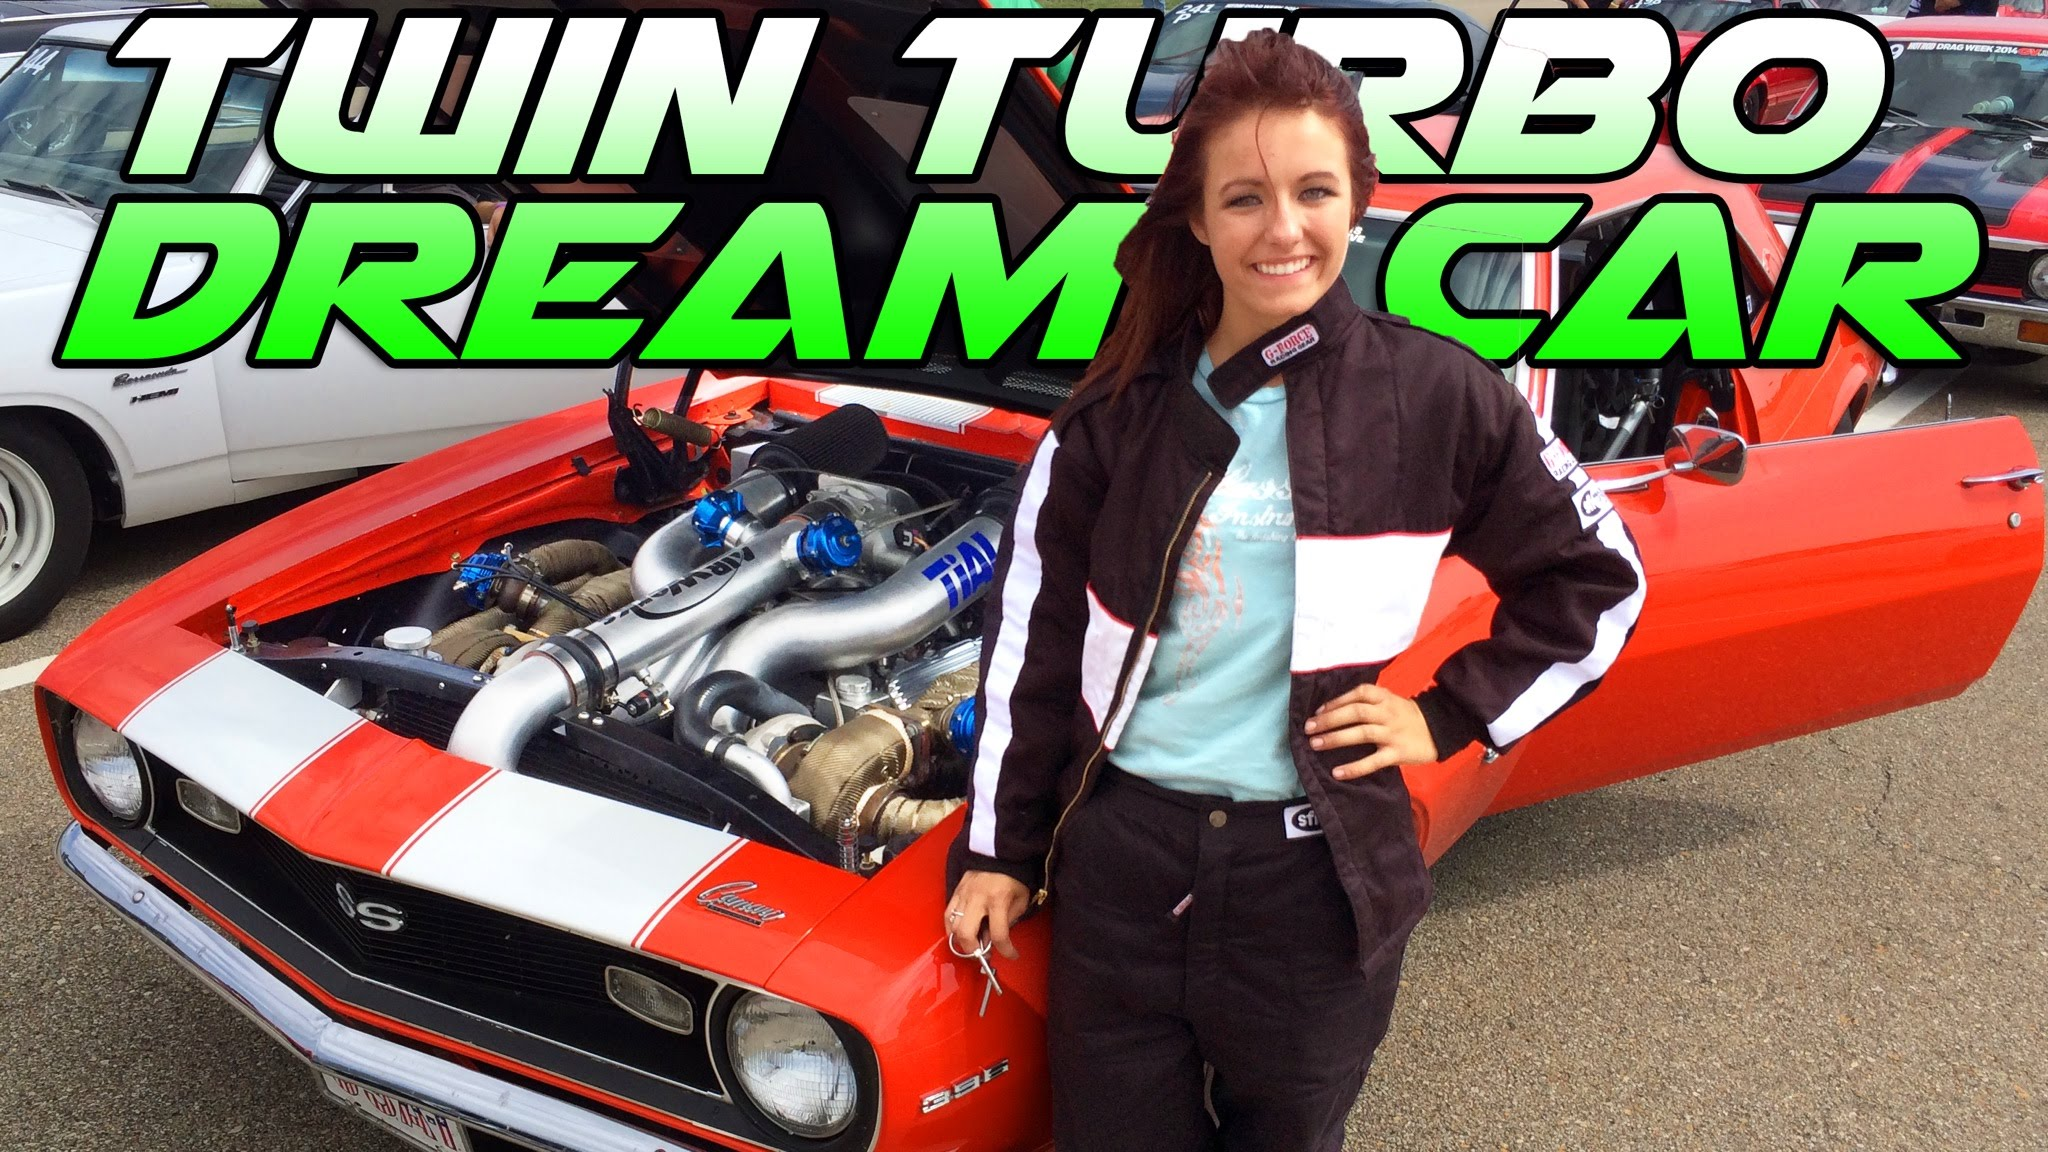 17-Year-Old Drag Racing Phenom Shows Off Her 1300 HP Camaro